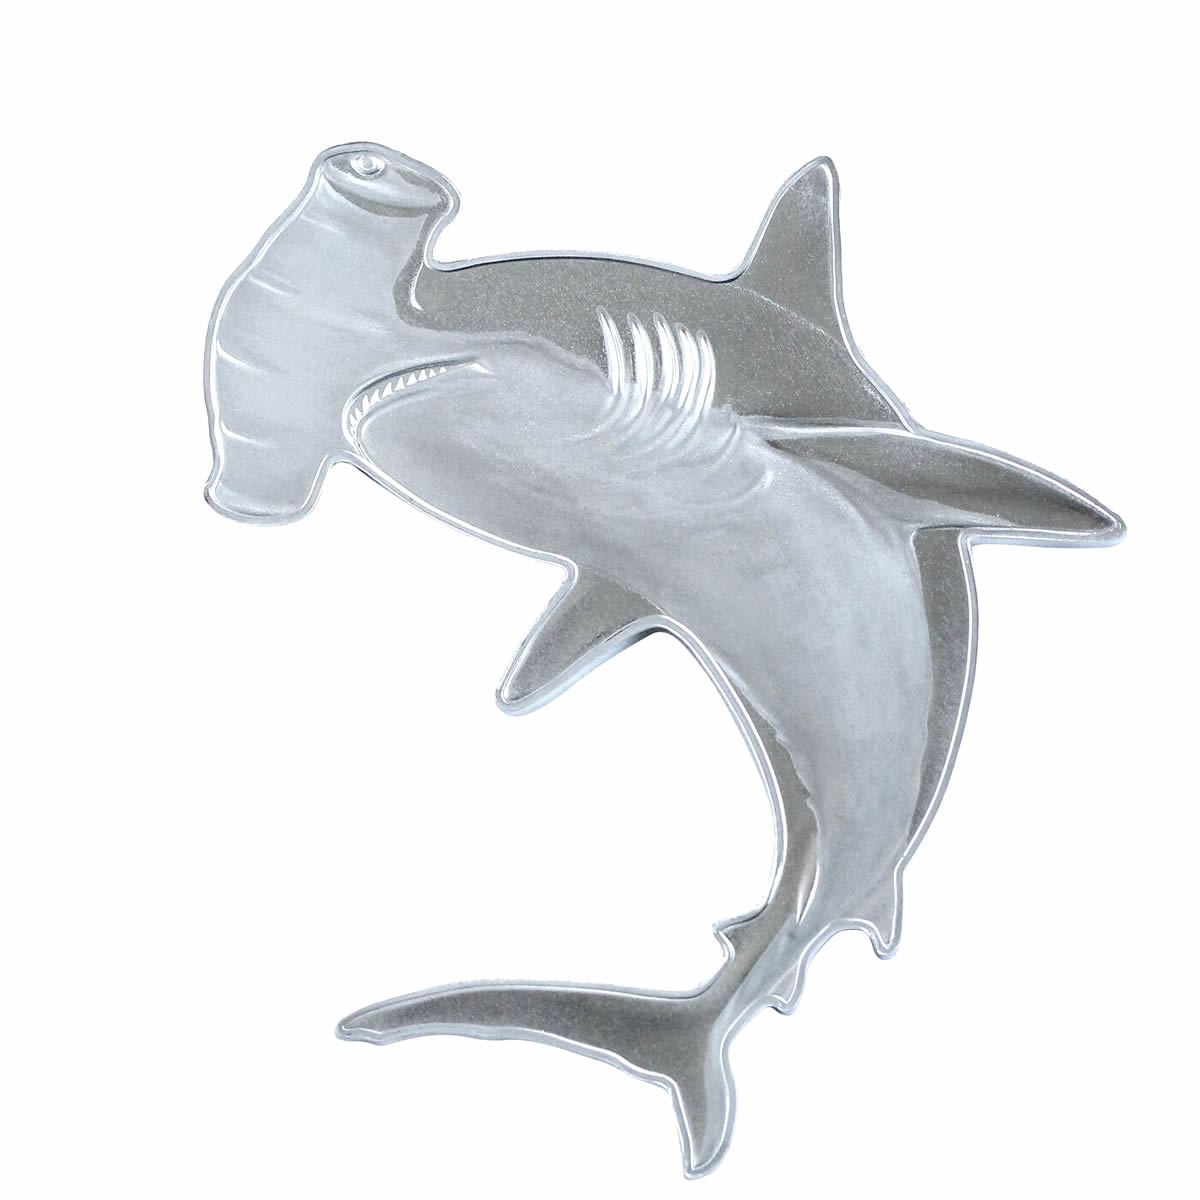 2020 SI 1 oz Silver $2 Hunters of the Deep: Hammerhead Shark